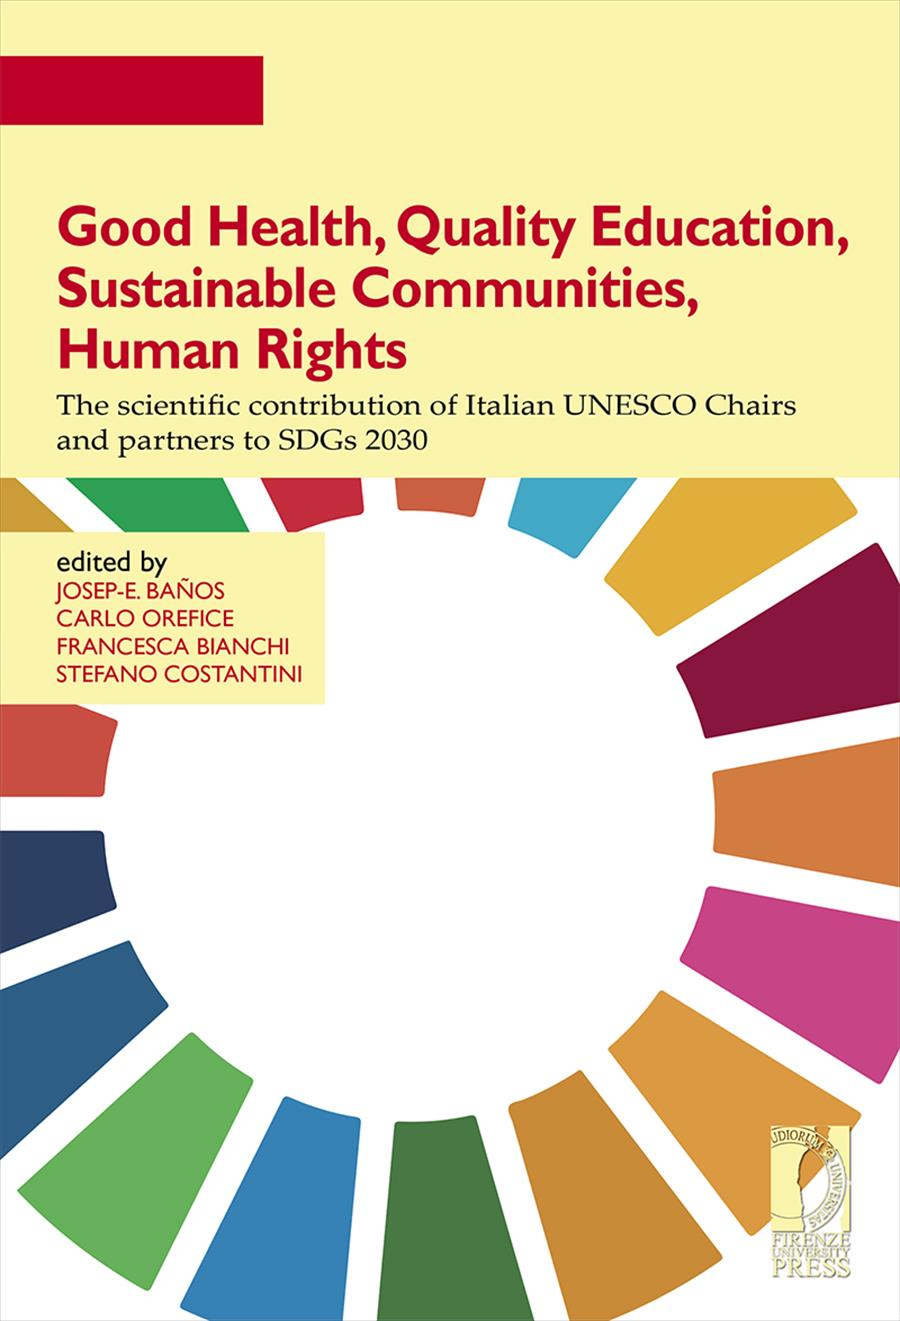 Good Health, Quality Education, Sustainable Communities, Human Rights